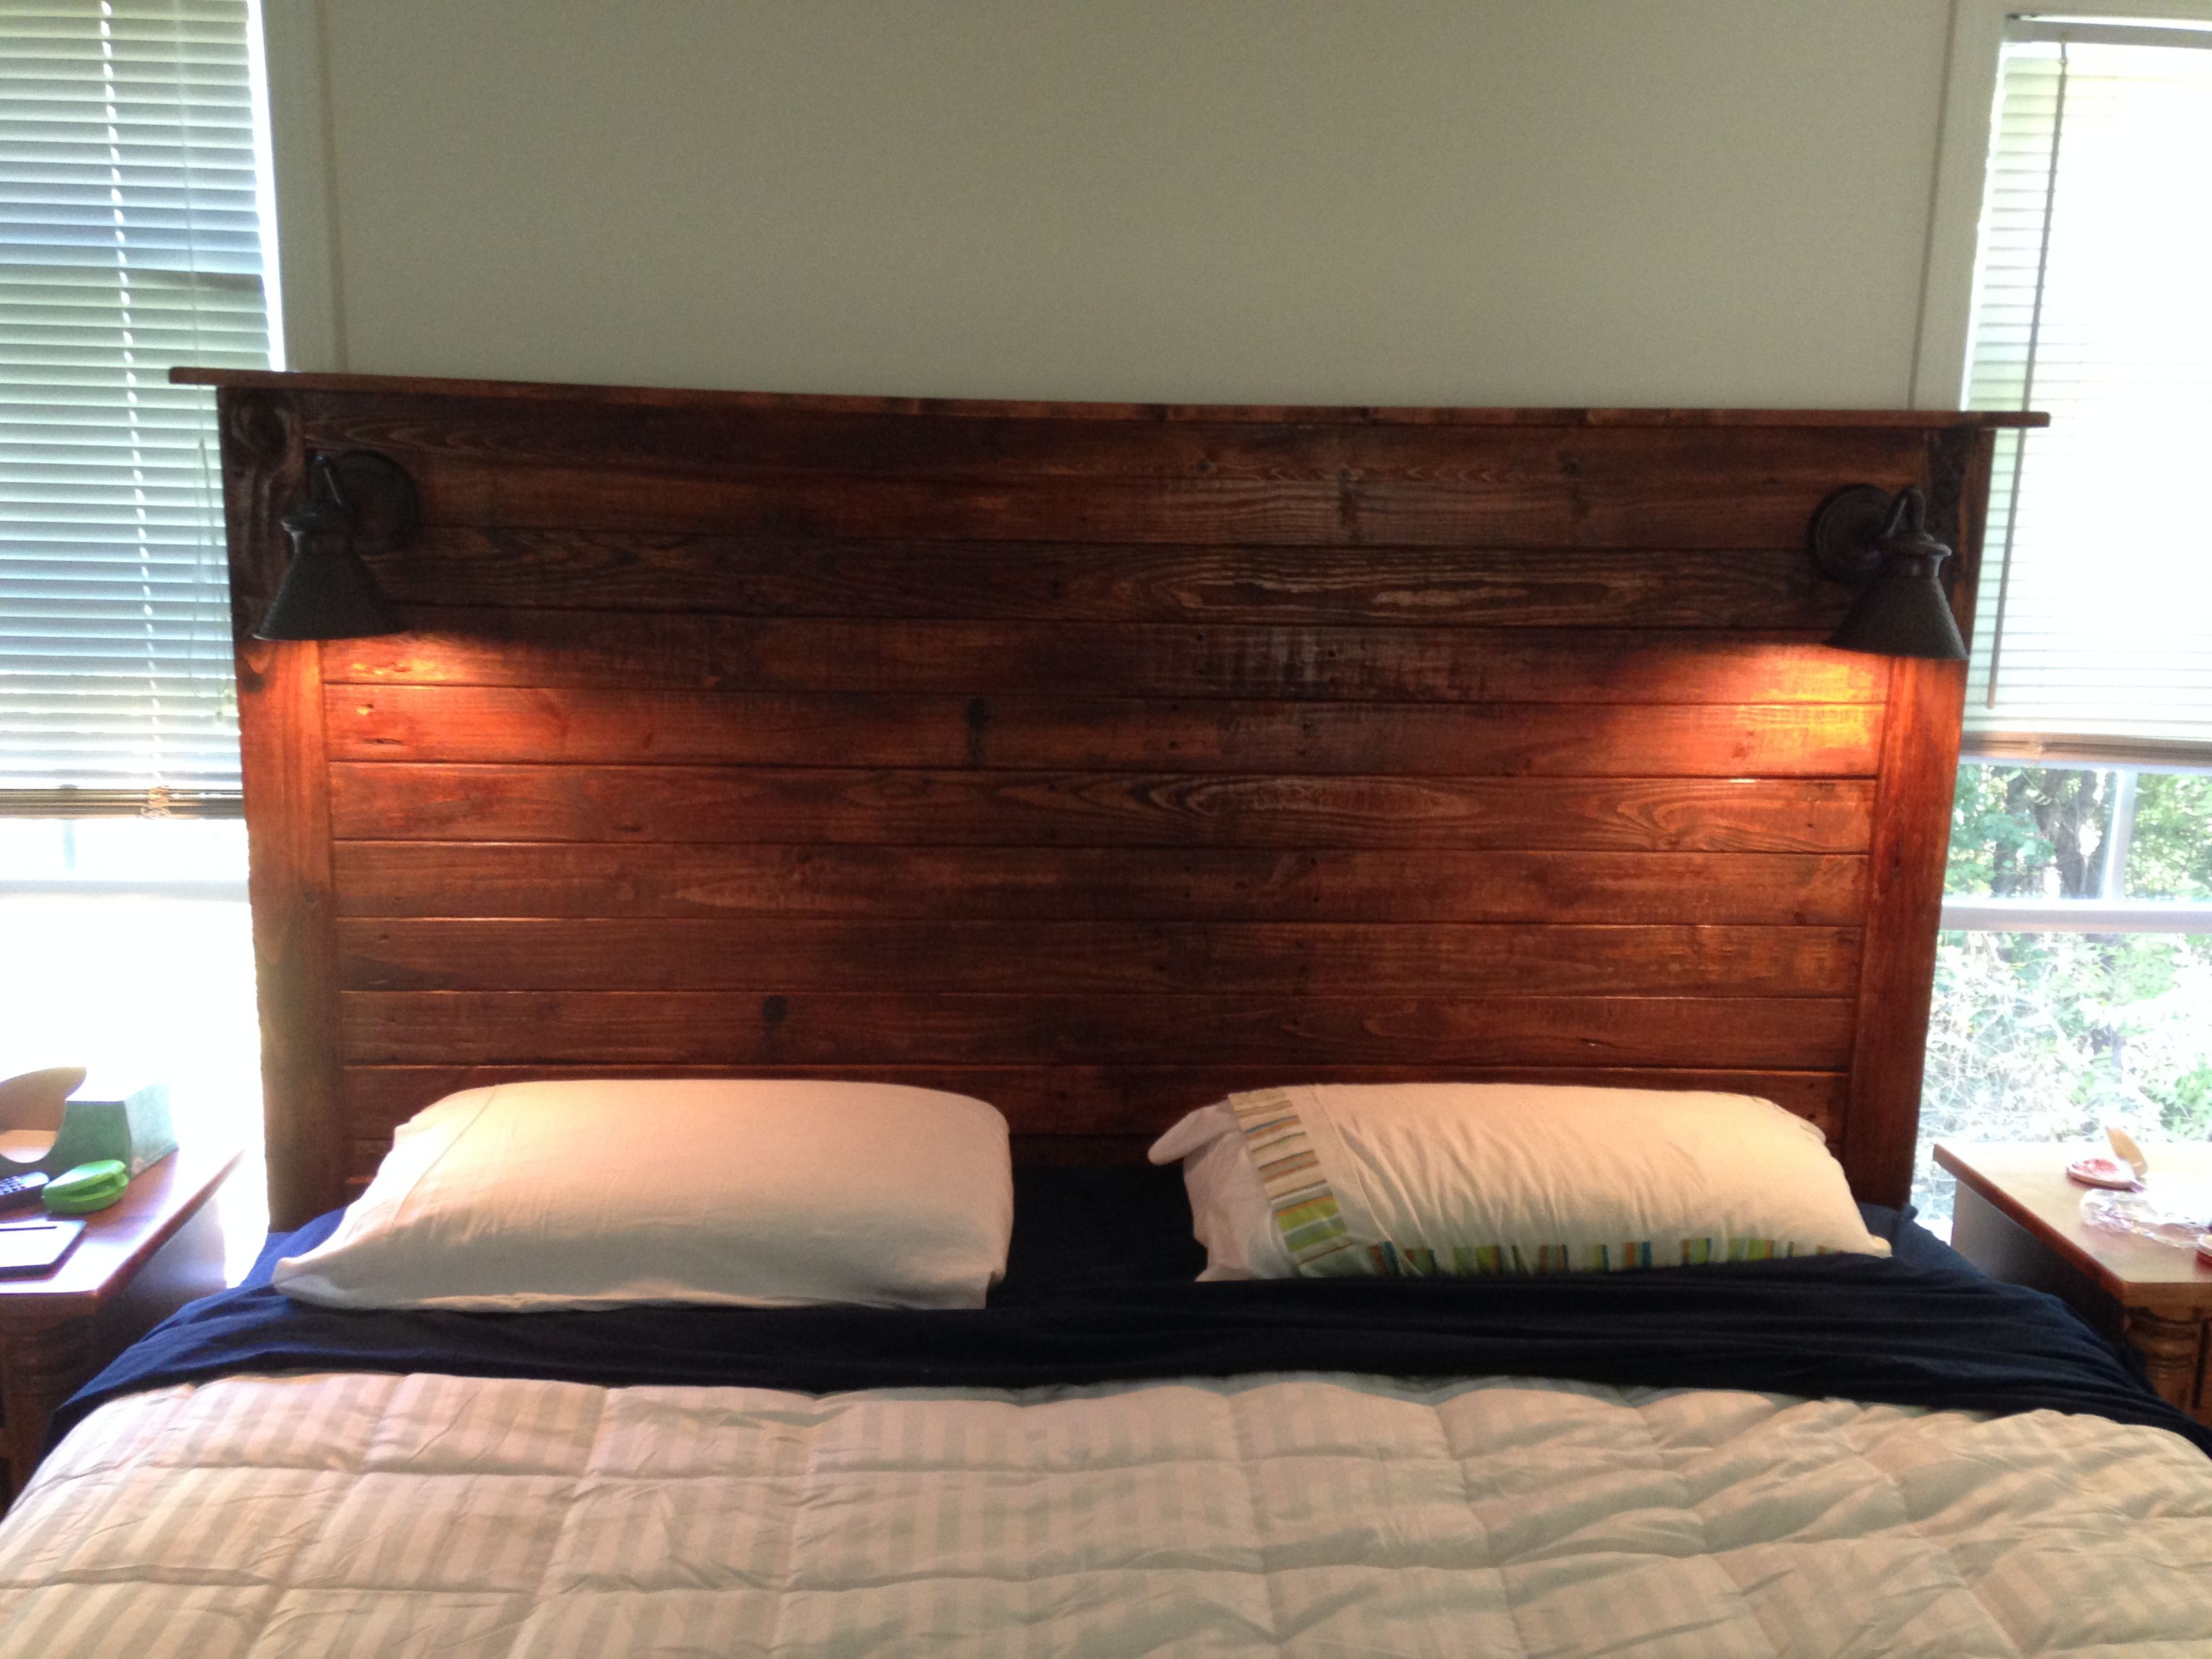 Reading Lights For Bunk Beds King Size Headboard Made From The Pallets That The Bed